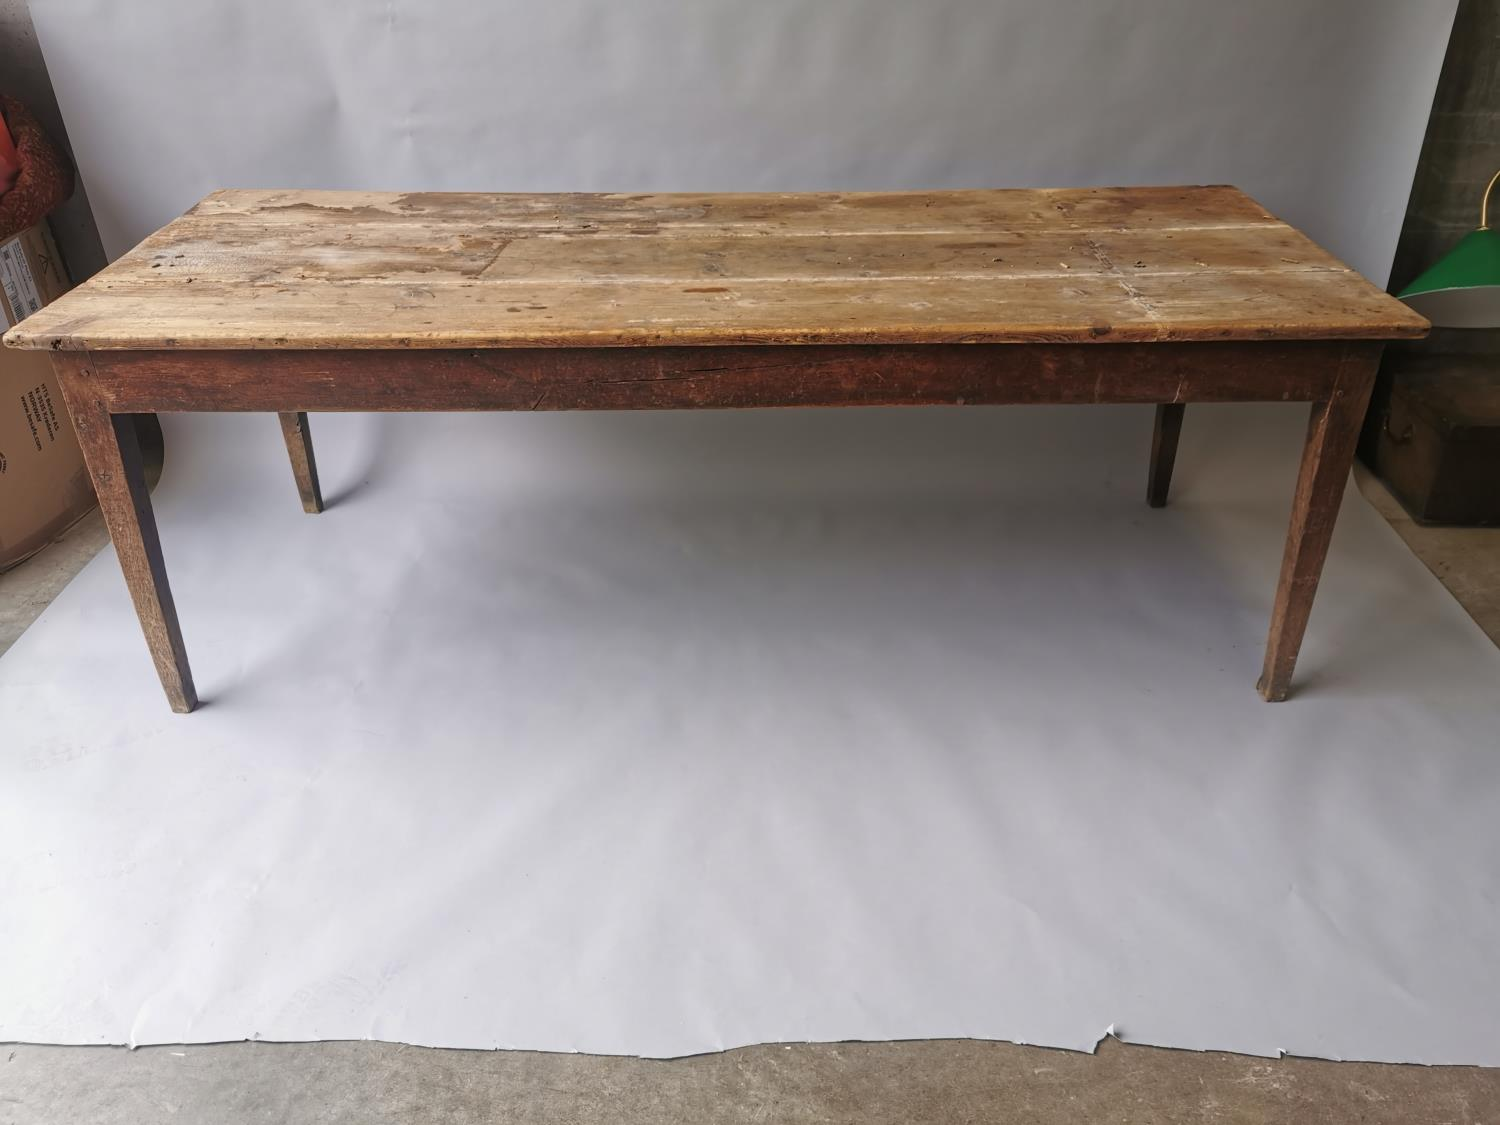 19th C. pine and oak kitchen table on square tapered legs 70 cm H x 198 cm L x 79 cm D